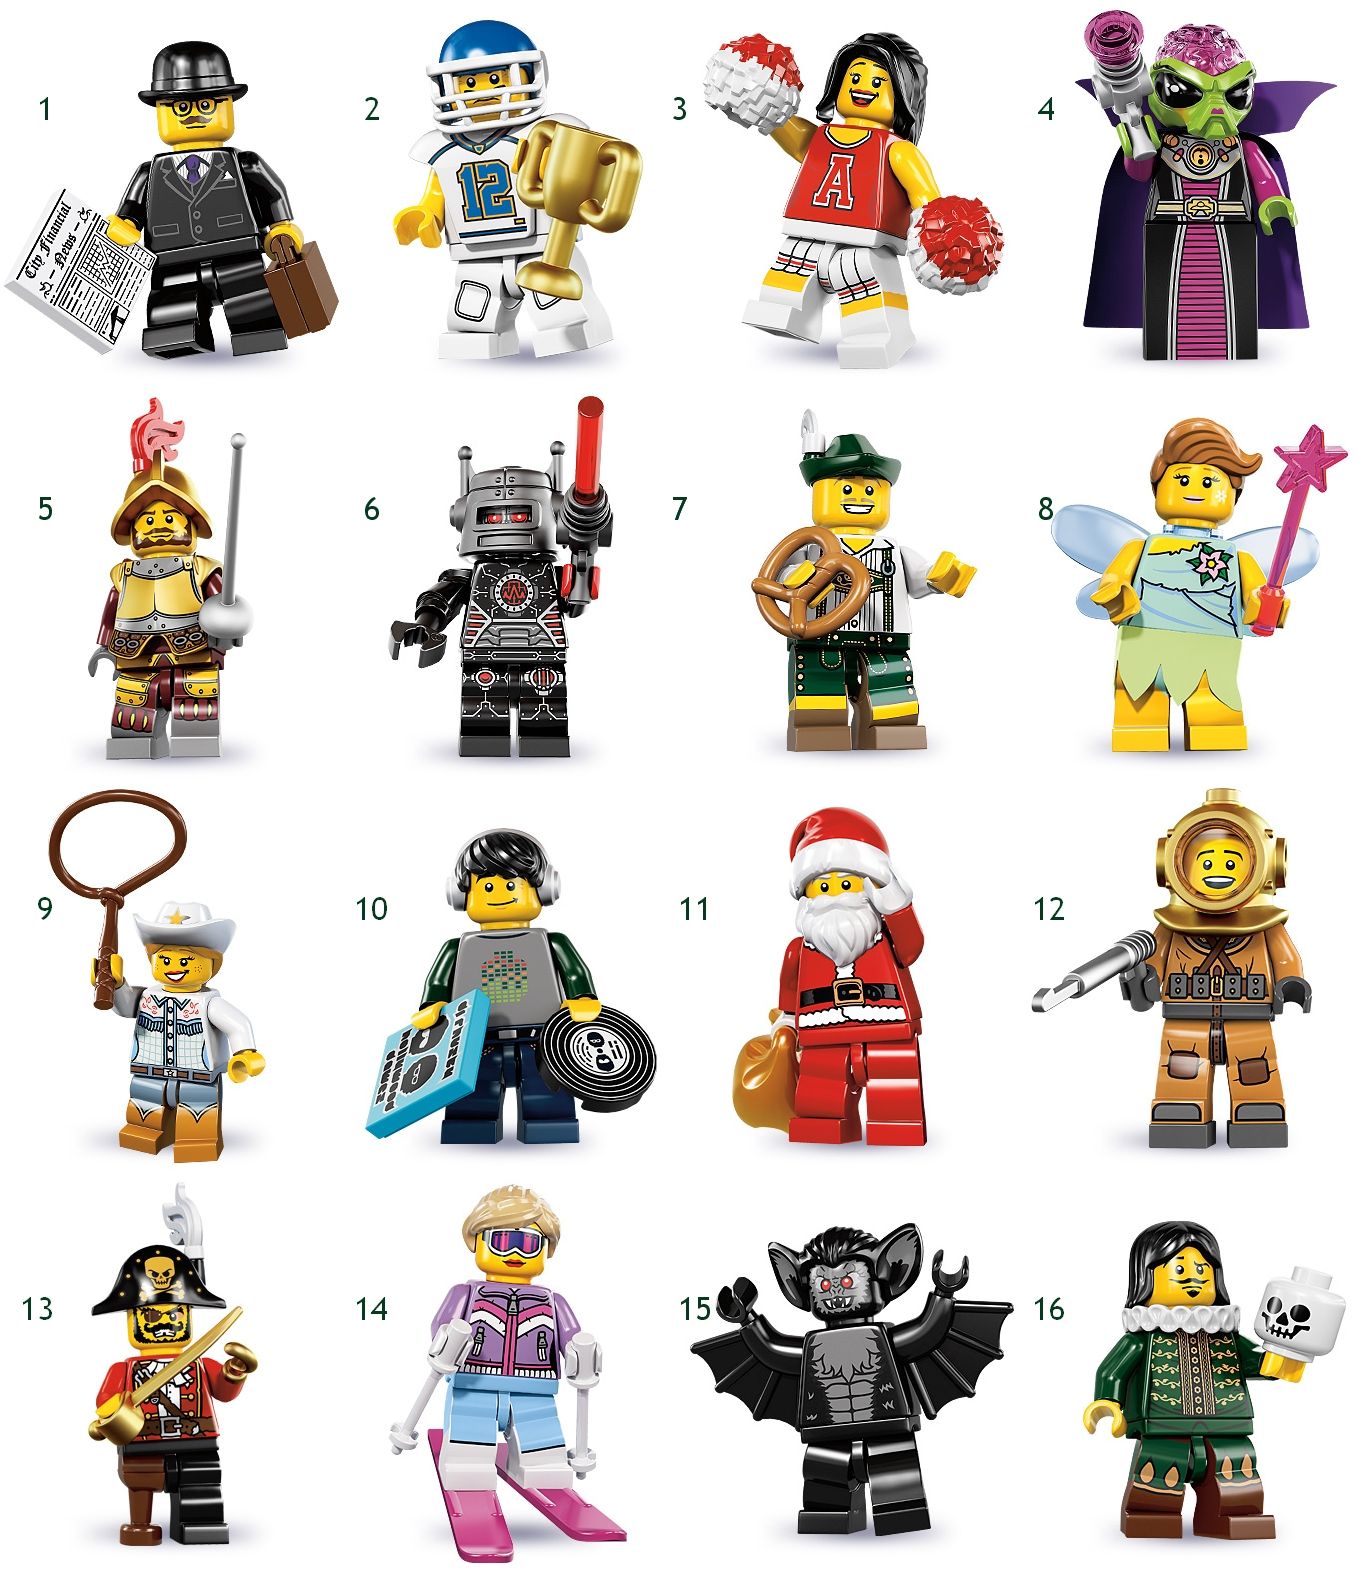 image lego series 8 minifigures jpg brickipedia fandom powered by wikia. Black Bedroom Furniture Sets. Home Design Ideas